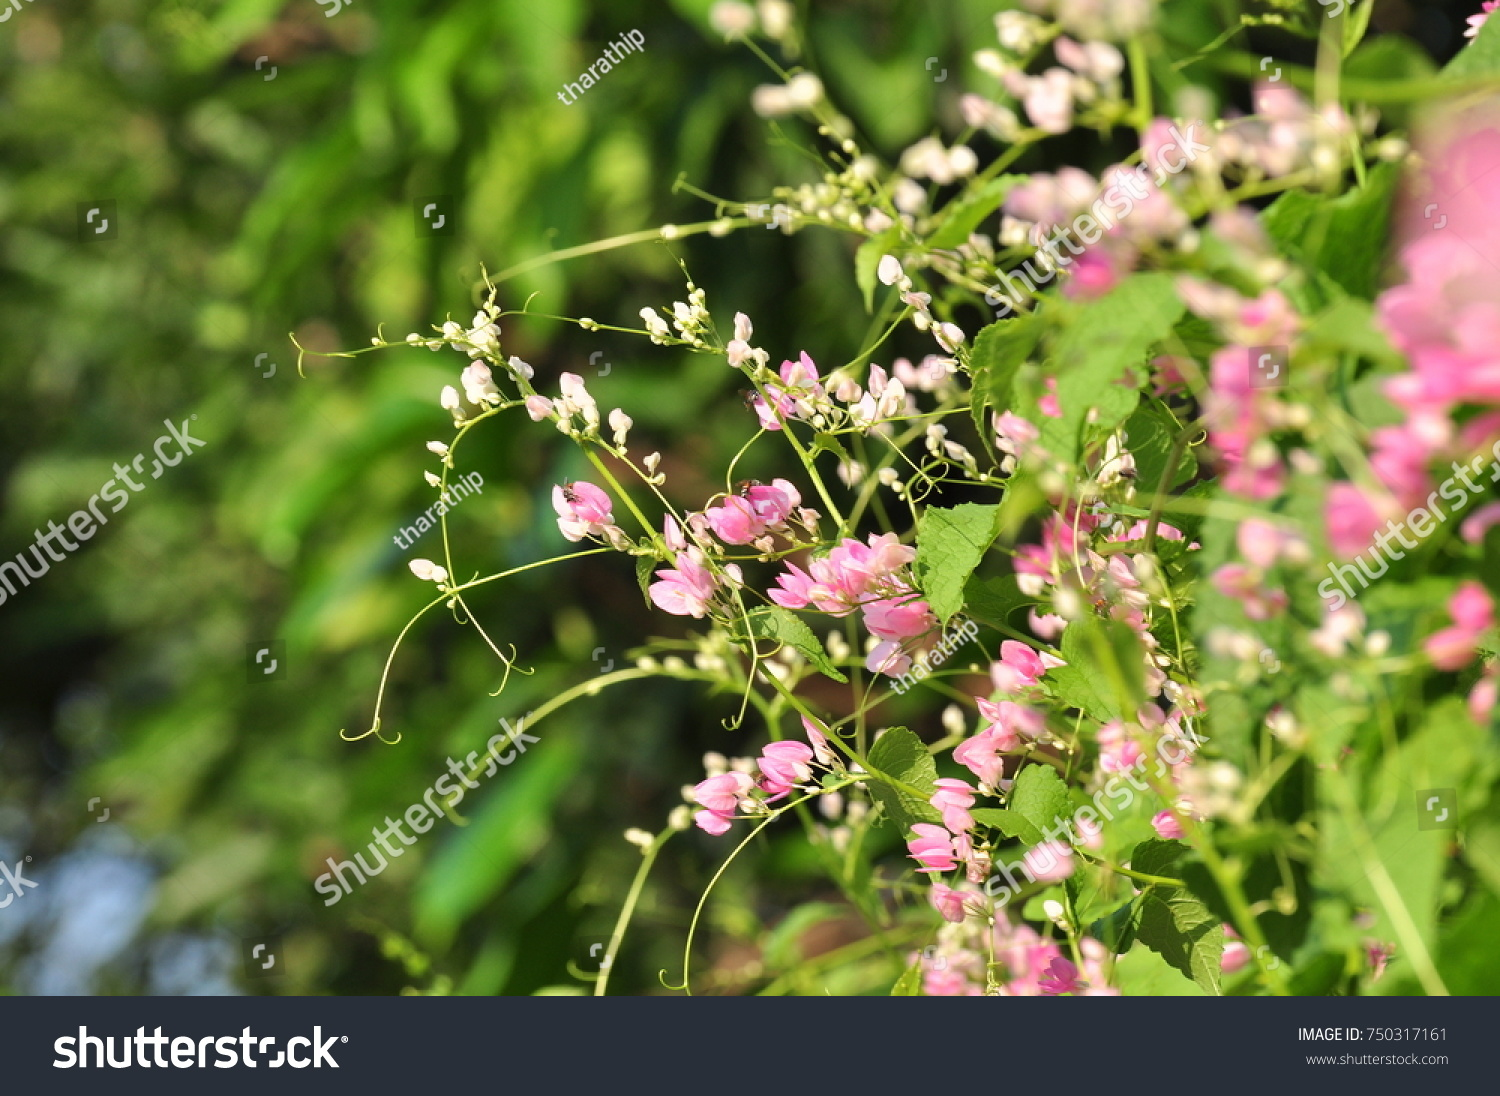 Beautiful flowers and grass in nature on a sunny day pink flowers id 750317161 izmirmasajfo